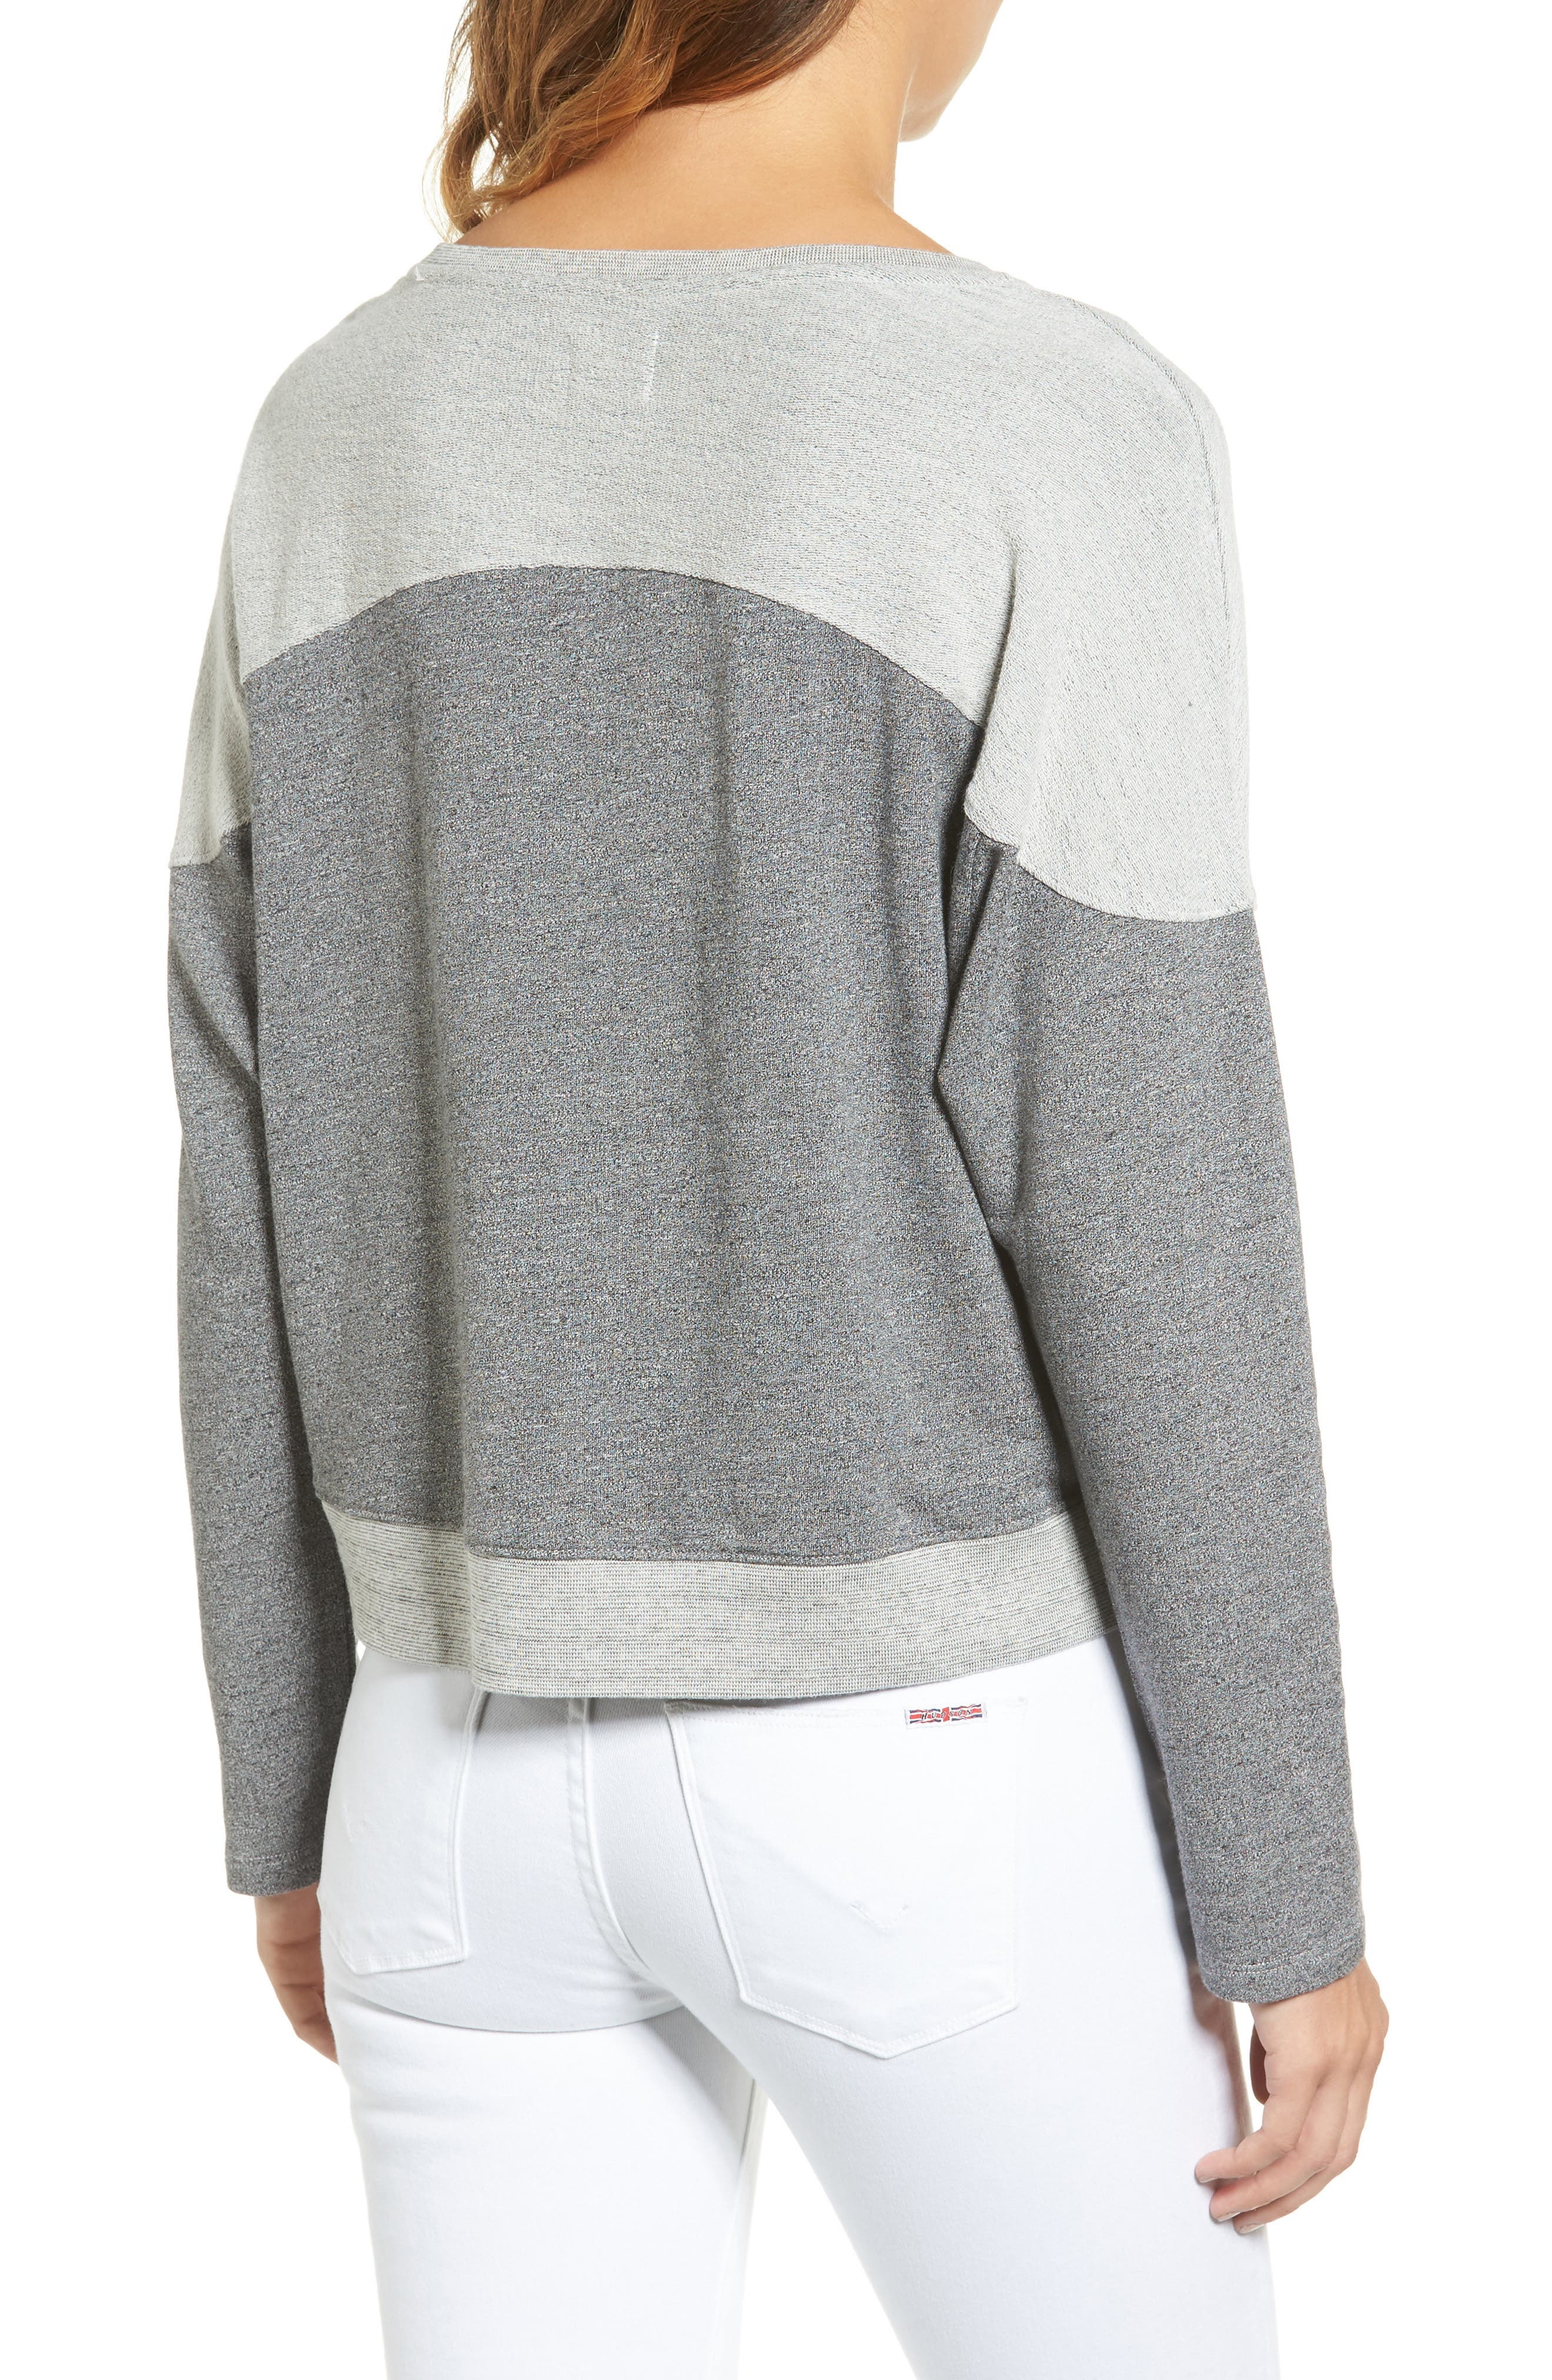 SUNDRY,                             Locals Only Crop Pullover,                             Alternate thumbnail 2, color,                             039